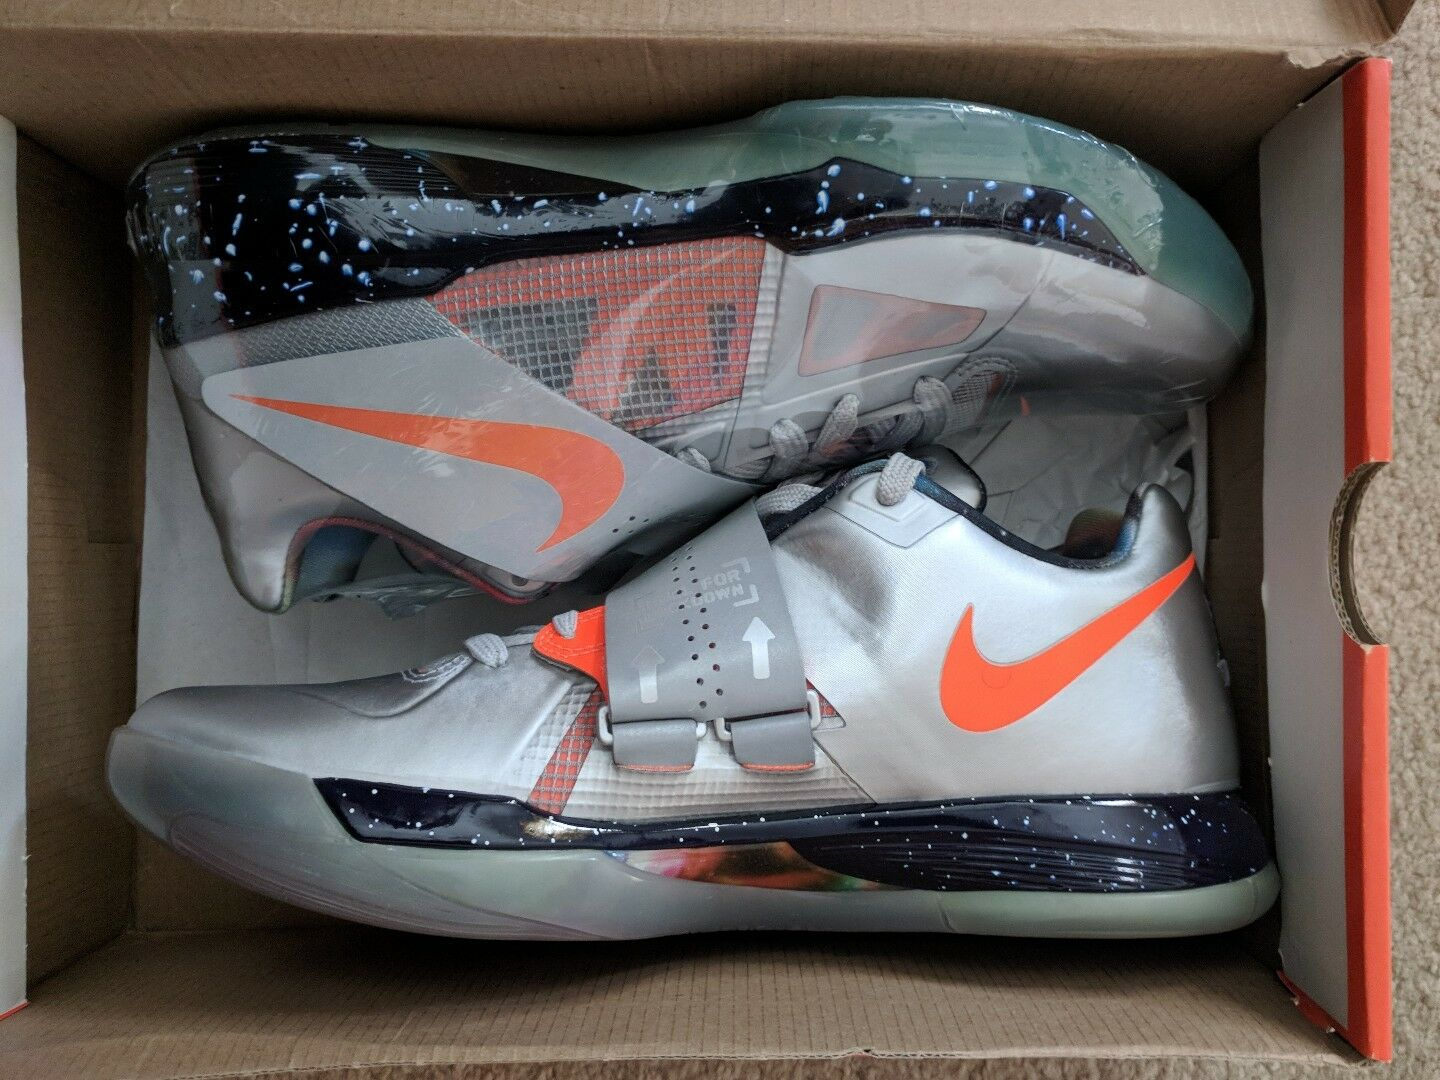 Nike KD IV ASG Galaxy Big Bang sz 10.5 DS BNIB 100 % Authentic RIF SF